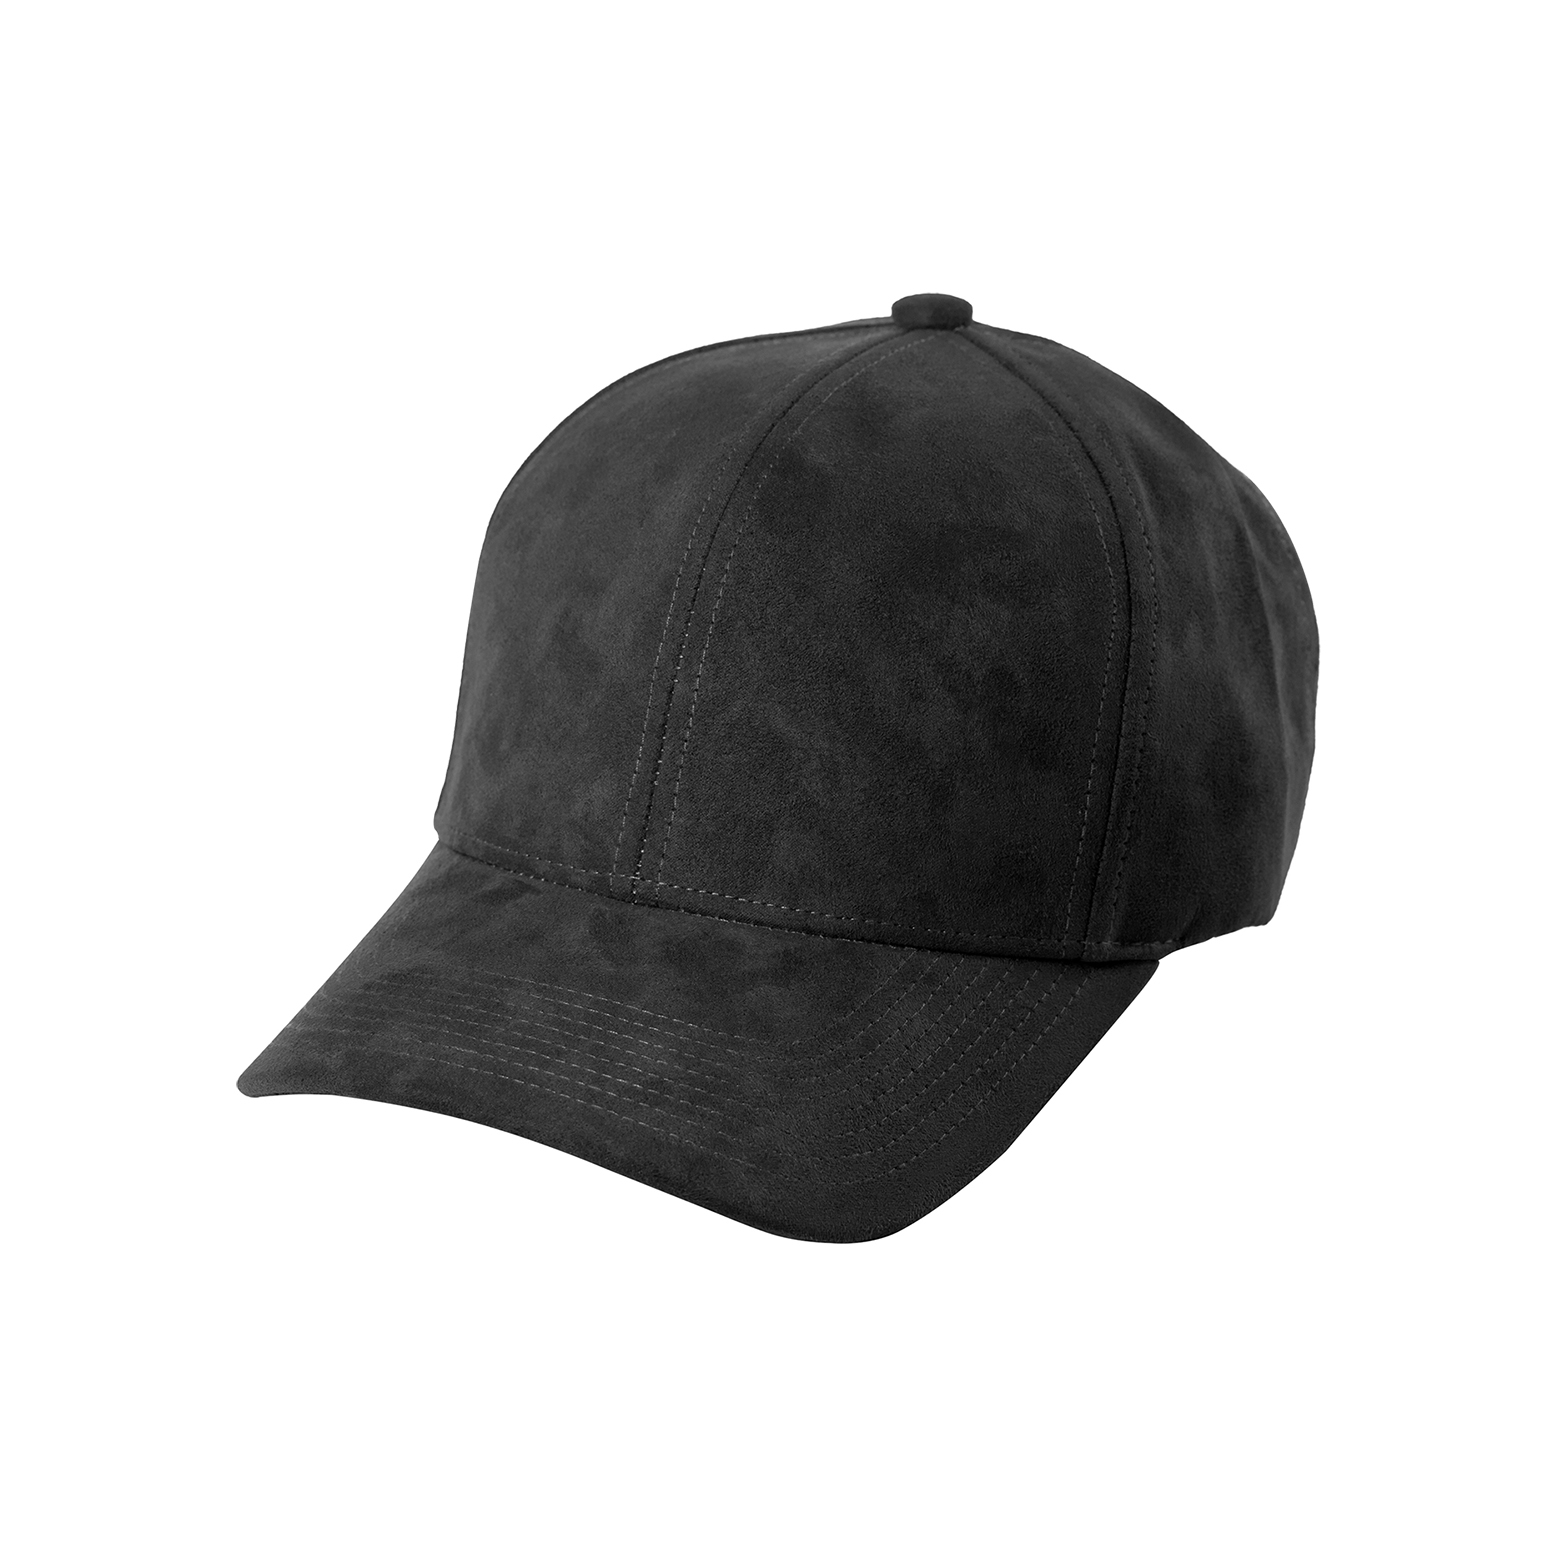 BASEBALL CAP ANTHRACITE SUEDE FRONT SIDE